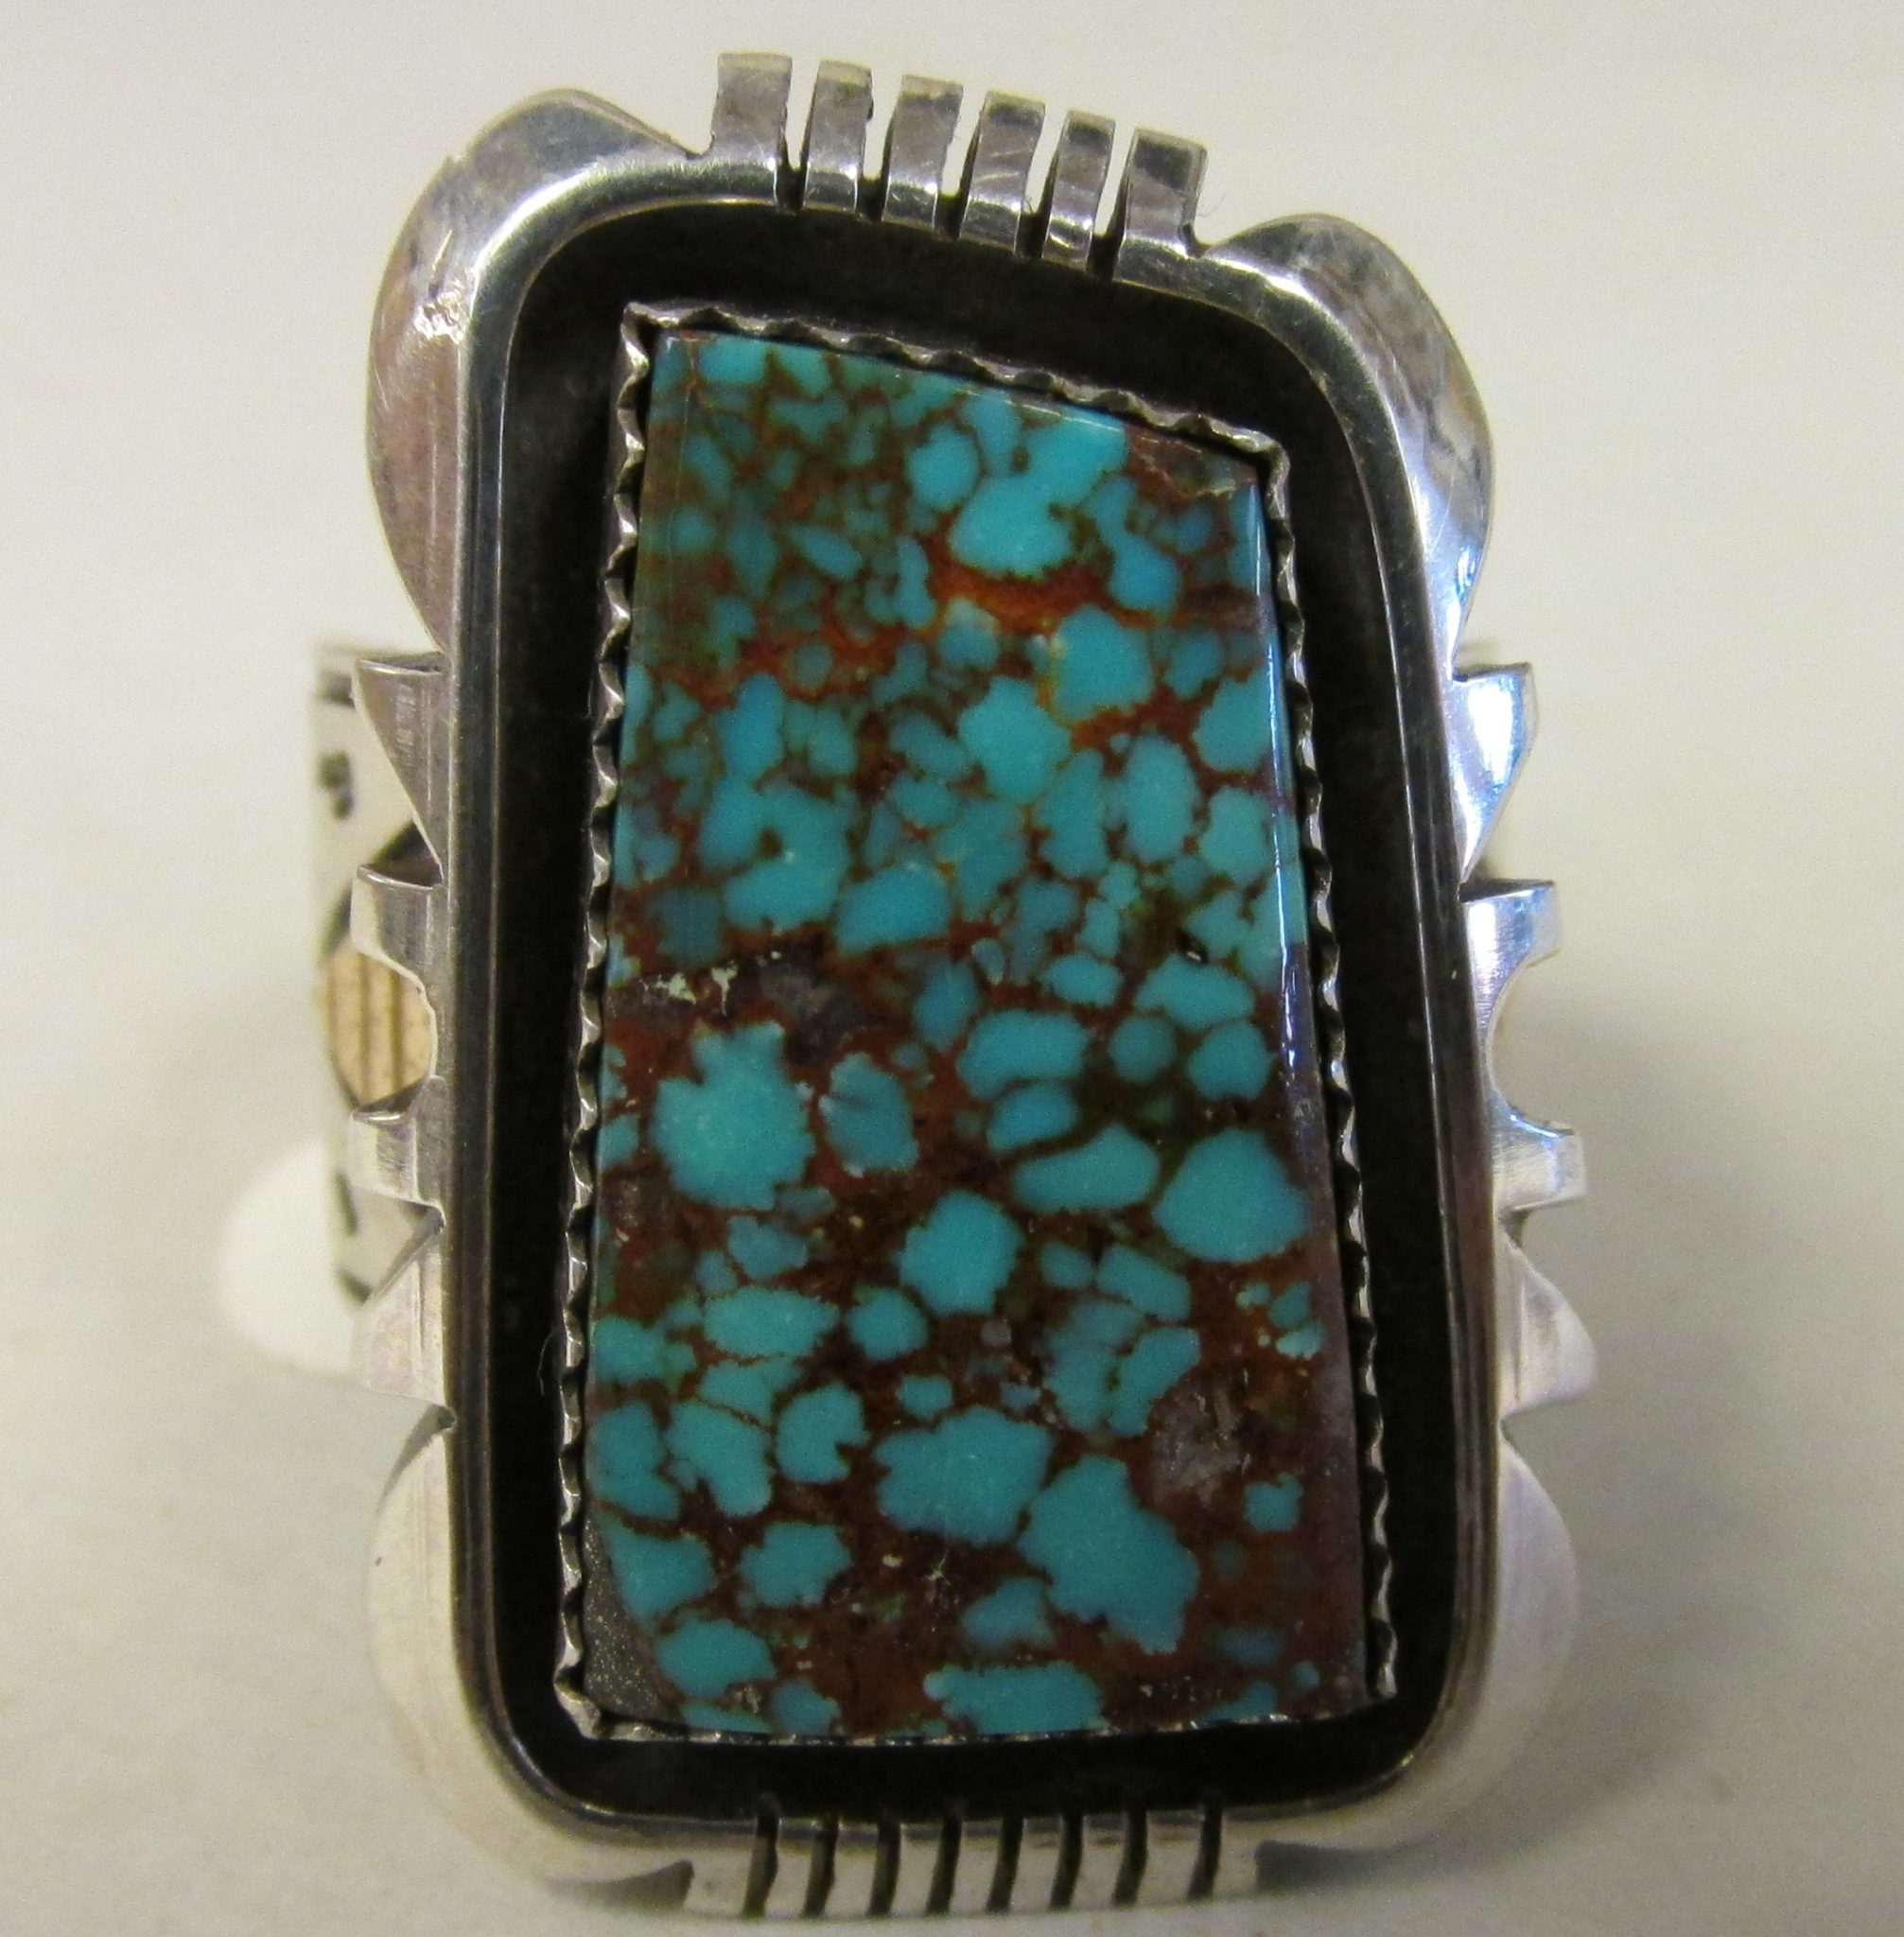 Paiute Turquoise direct from Tony Cotner's Sister